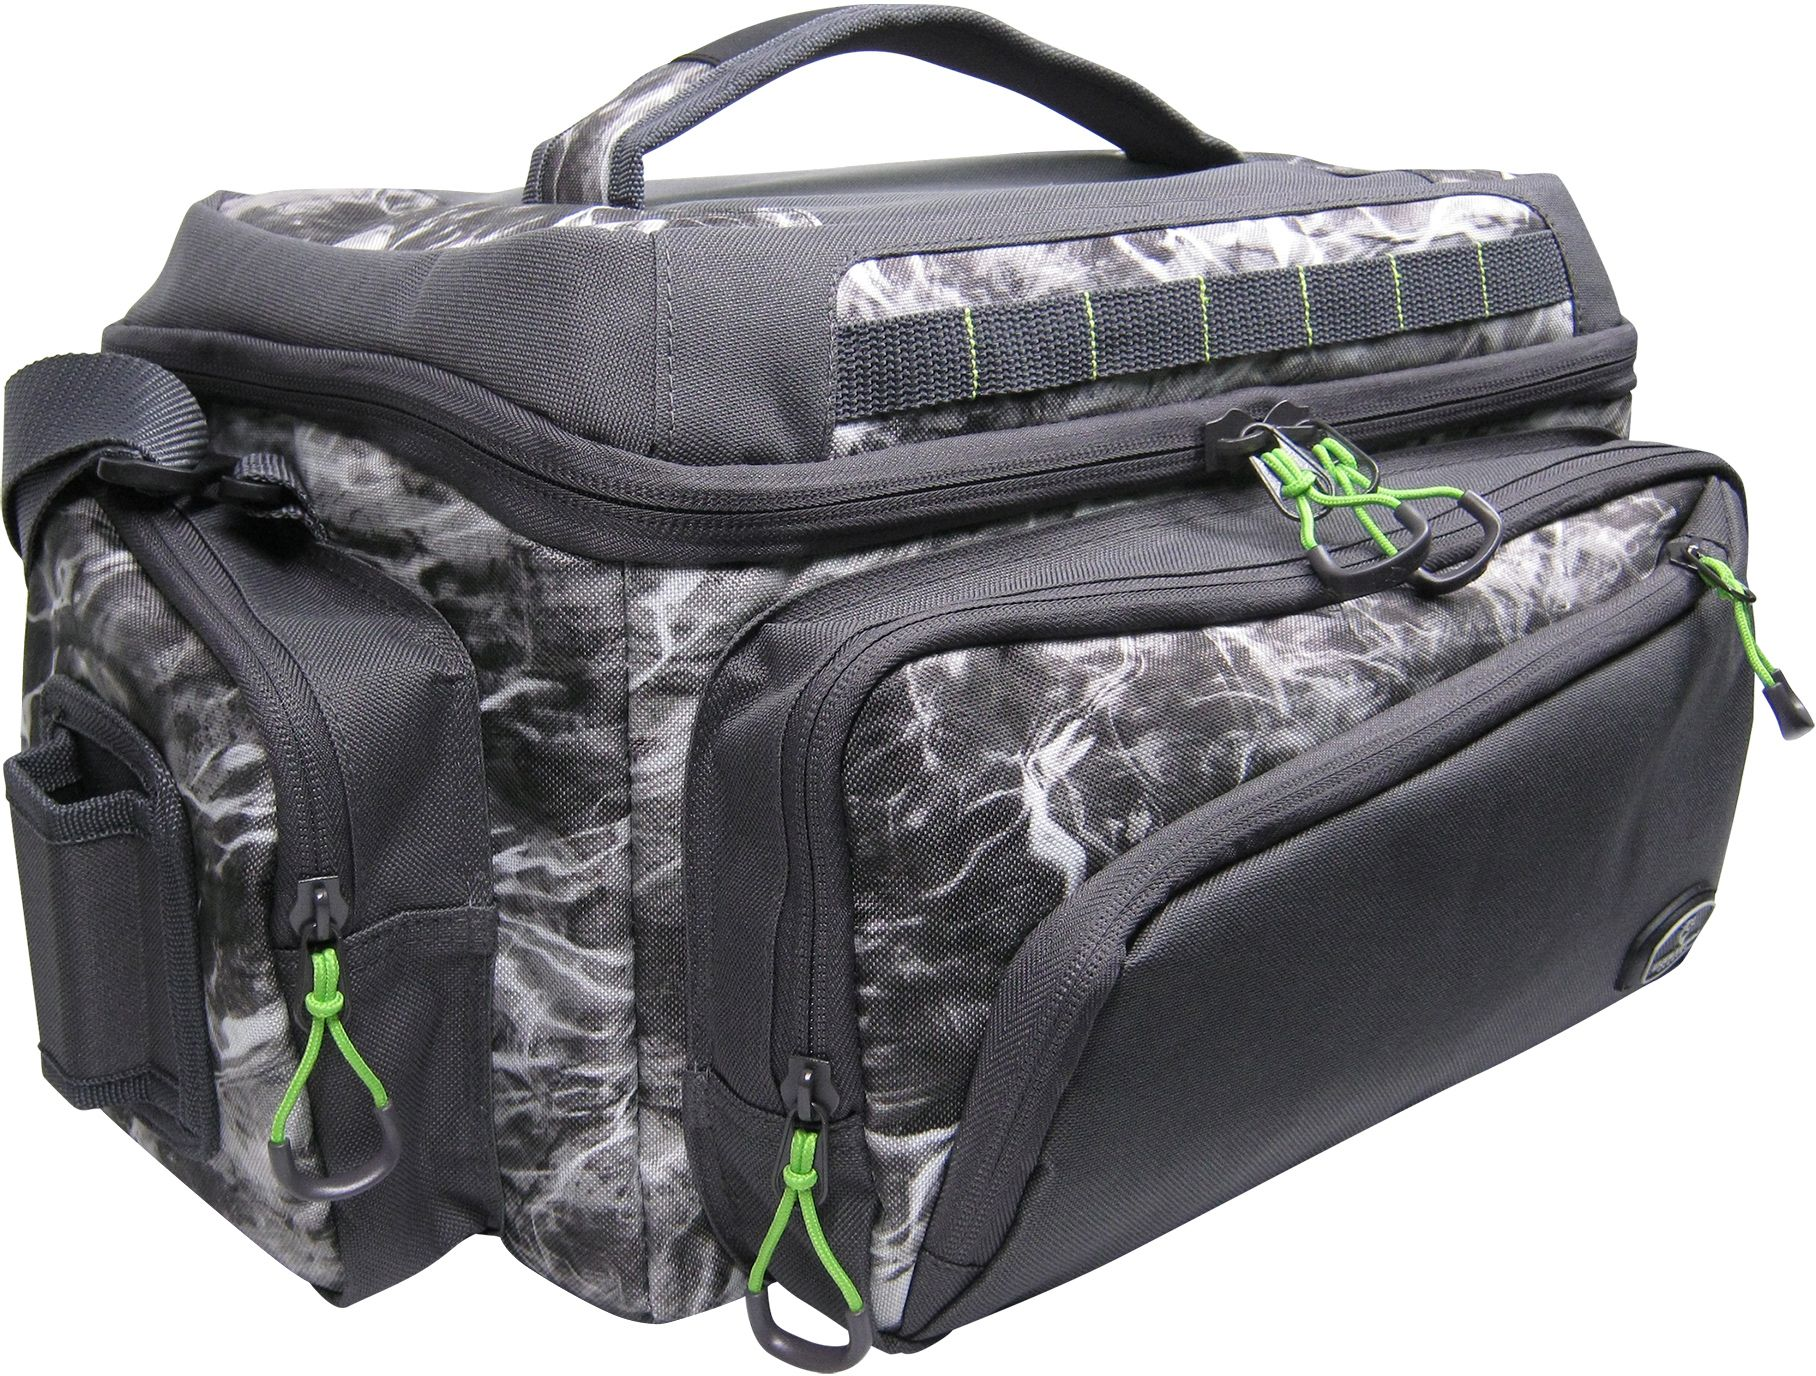 Evolution Large Mouth 3700 Tackle Bag, Size: One size